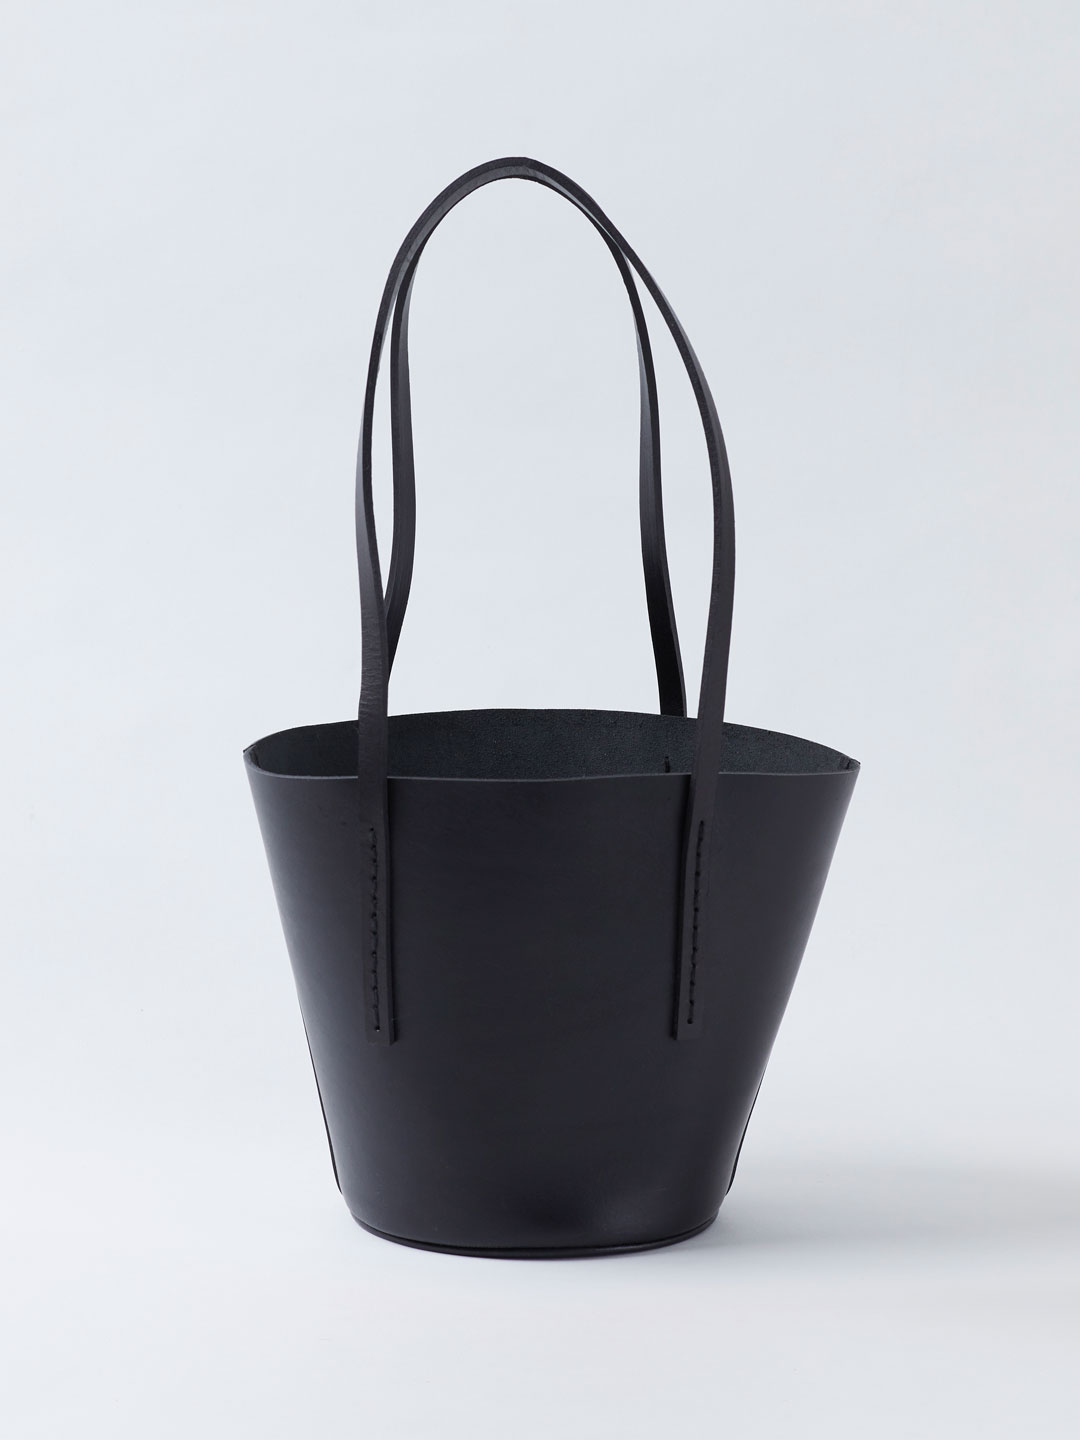 Petite Pale Bag - Black